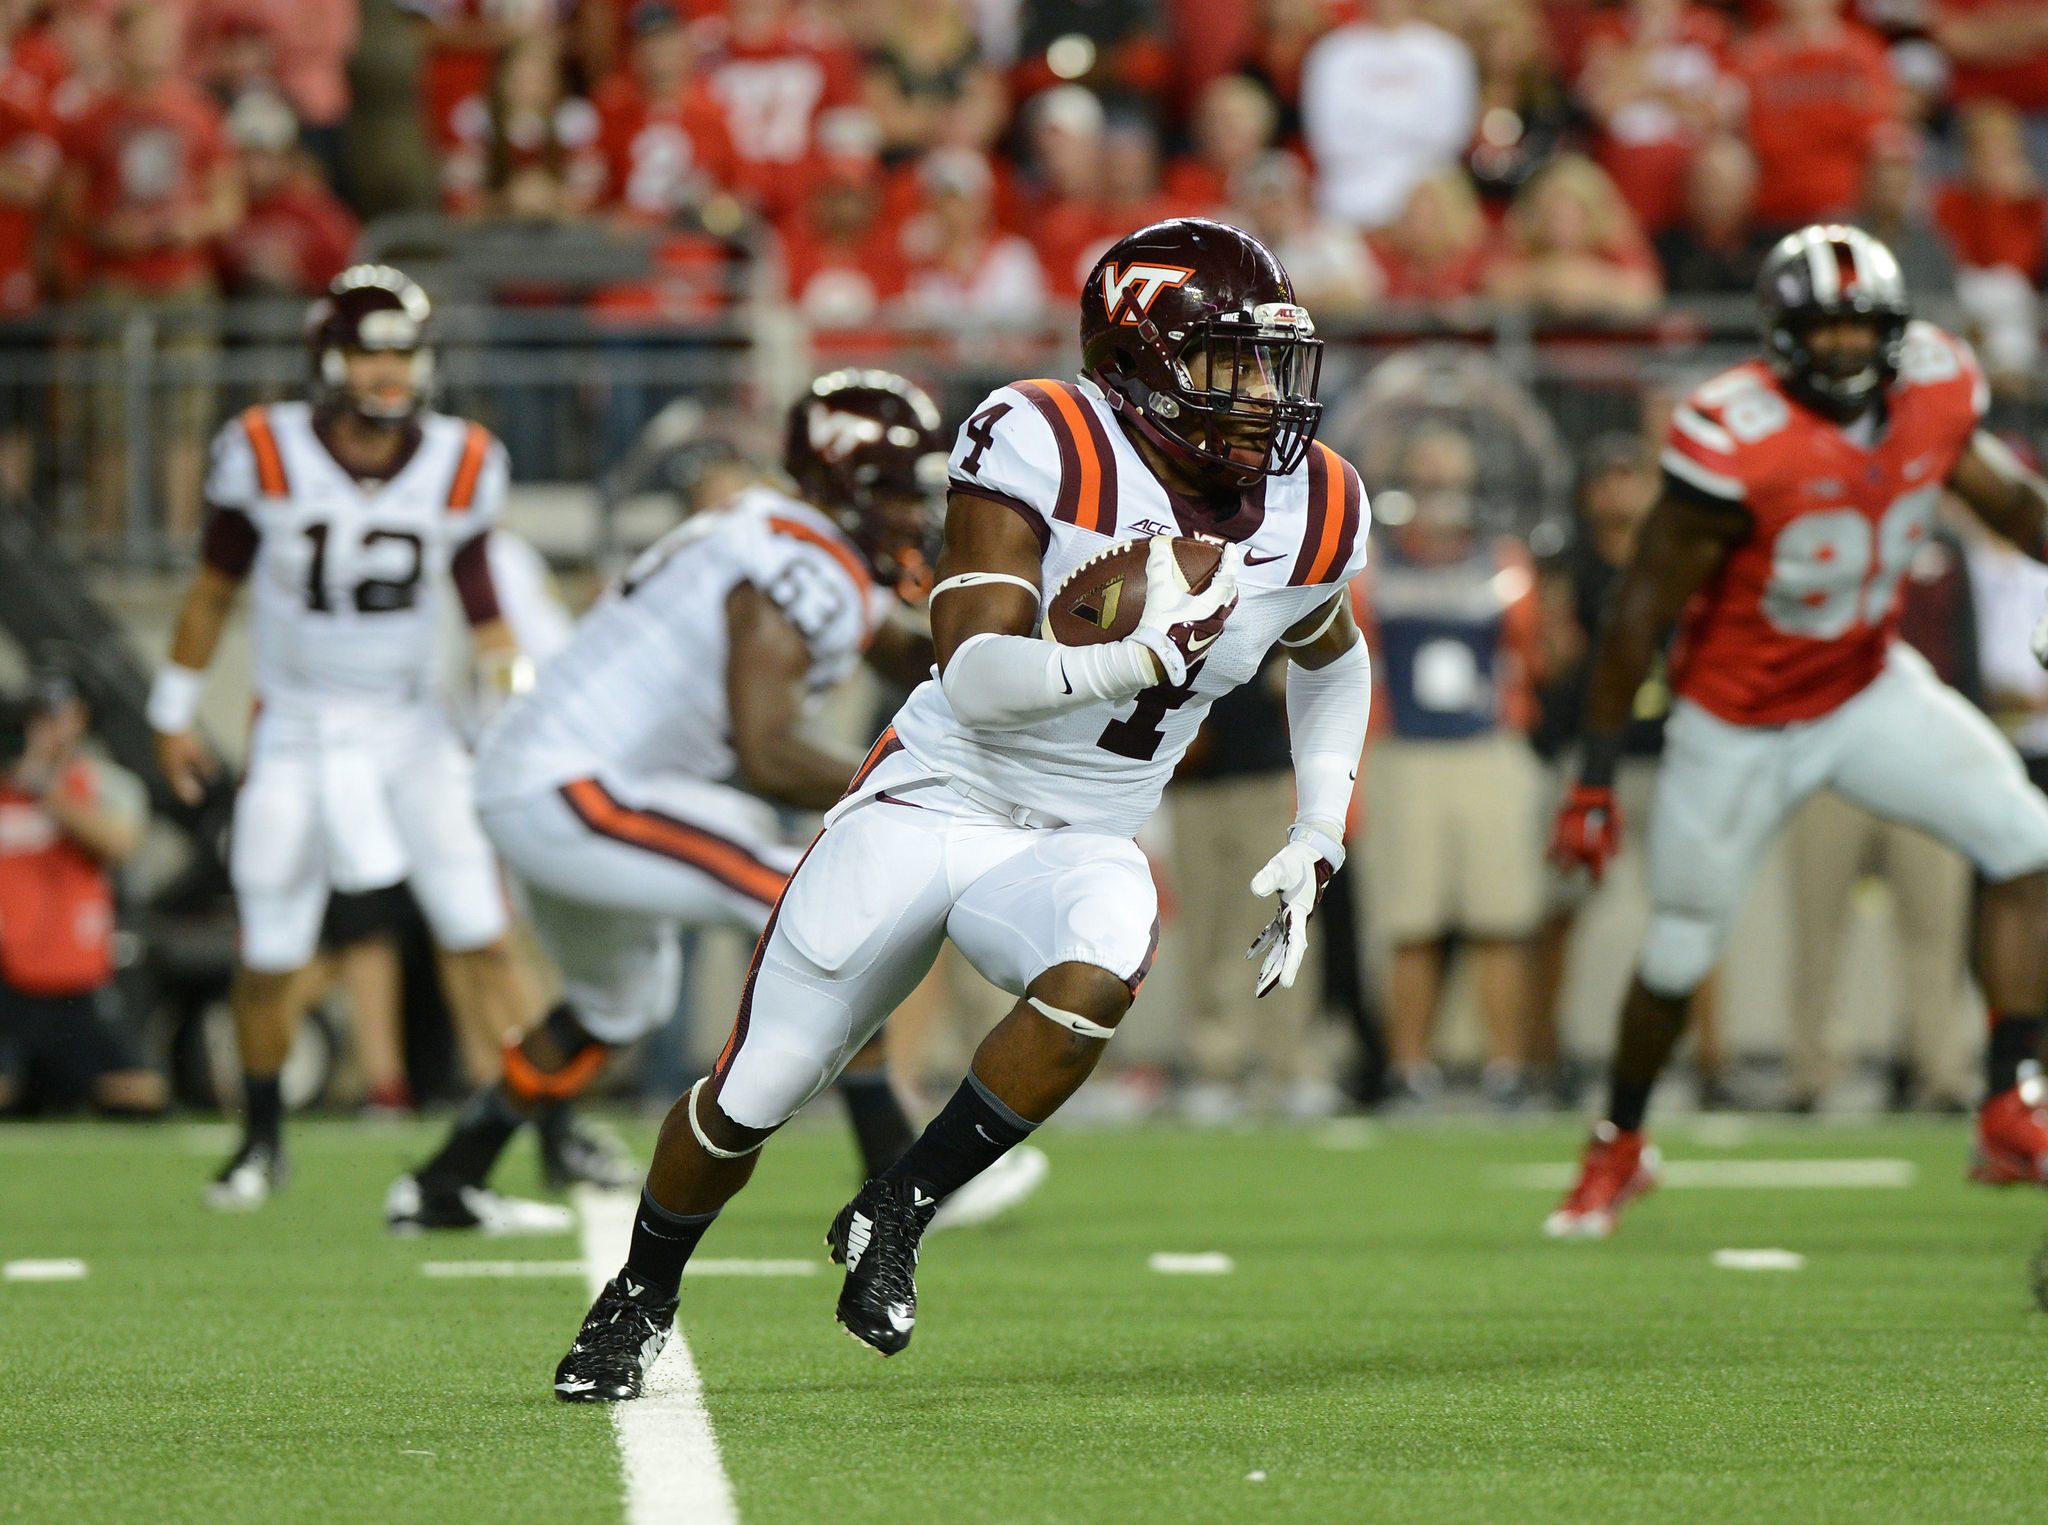 courtesy of Virginia Tech Tailback J.C. Coleman has inherited a greater share of the Hokies' rushing duties because of Virginia Tech's injuries.